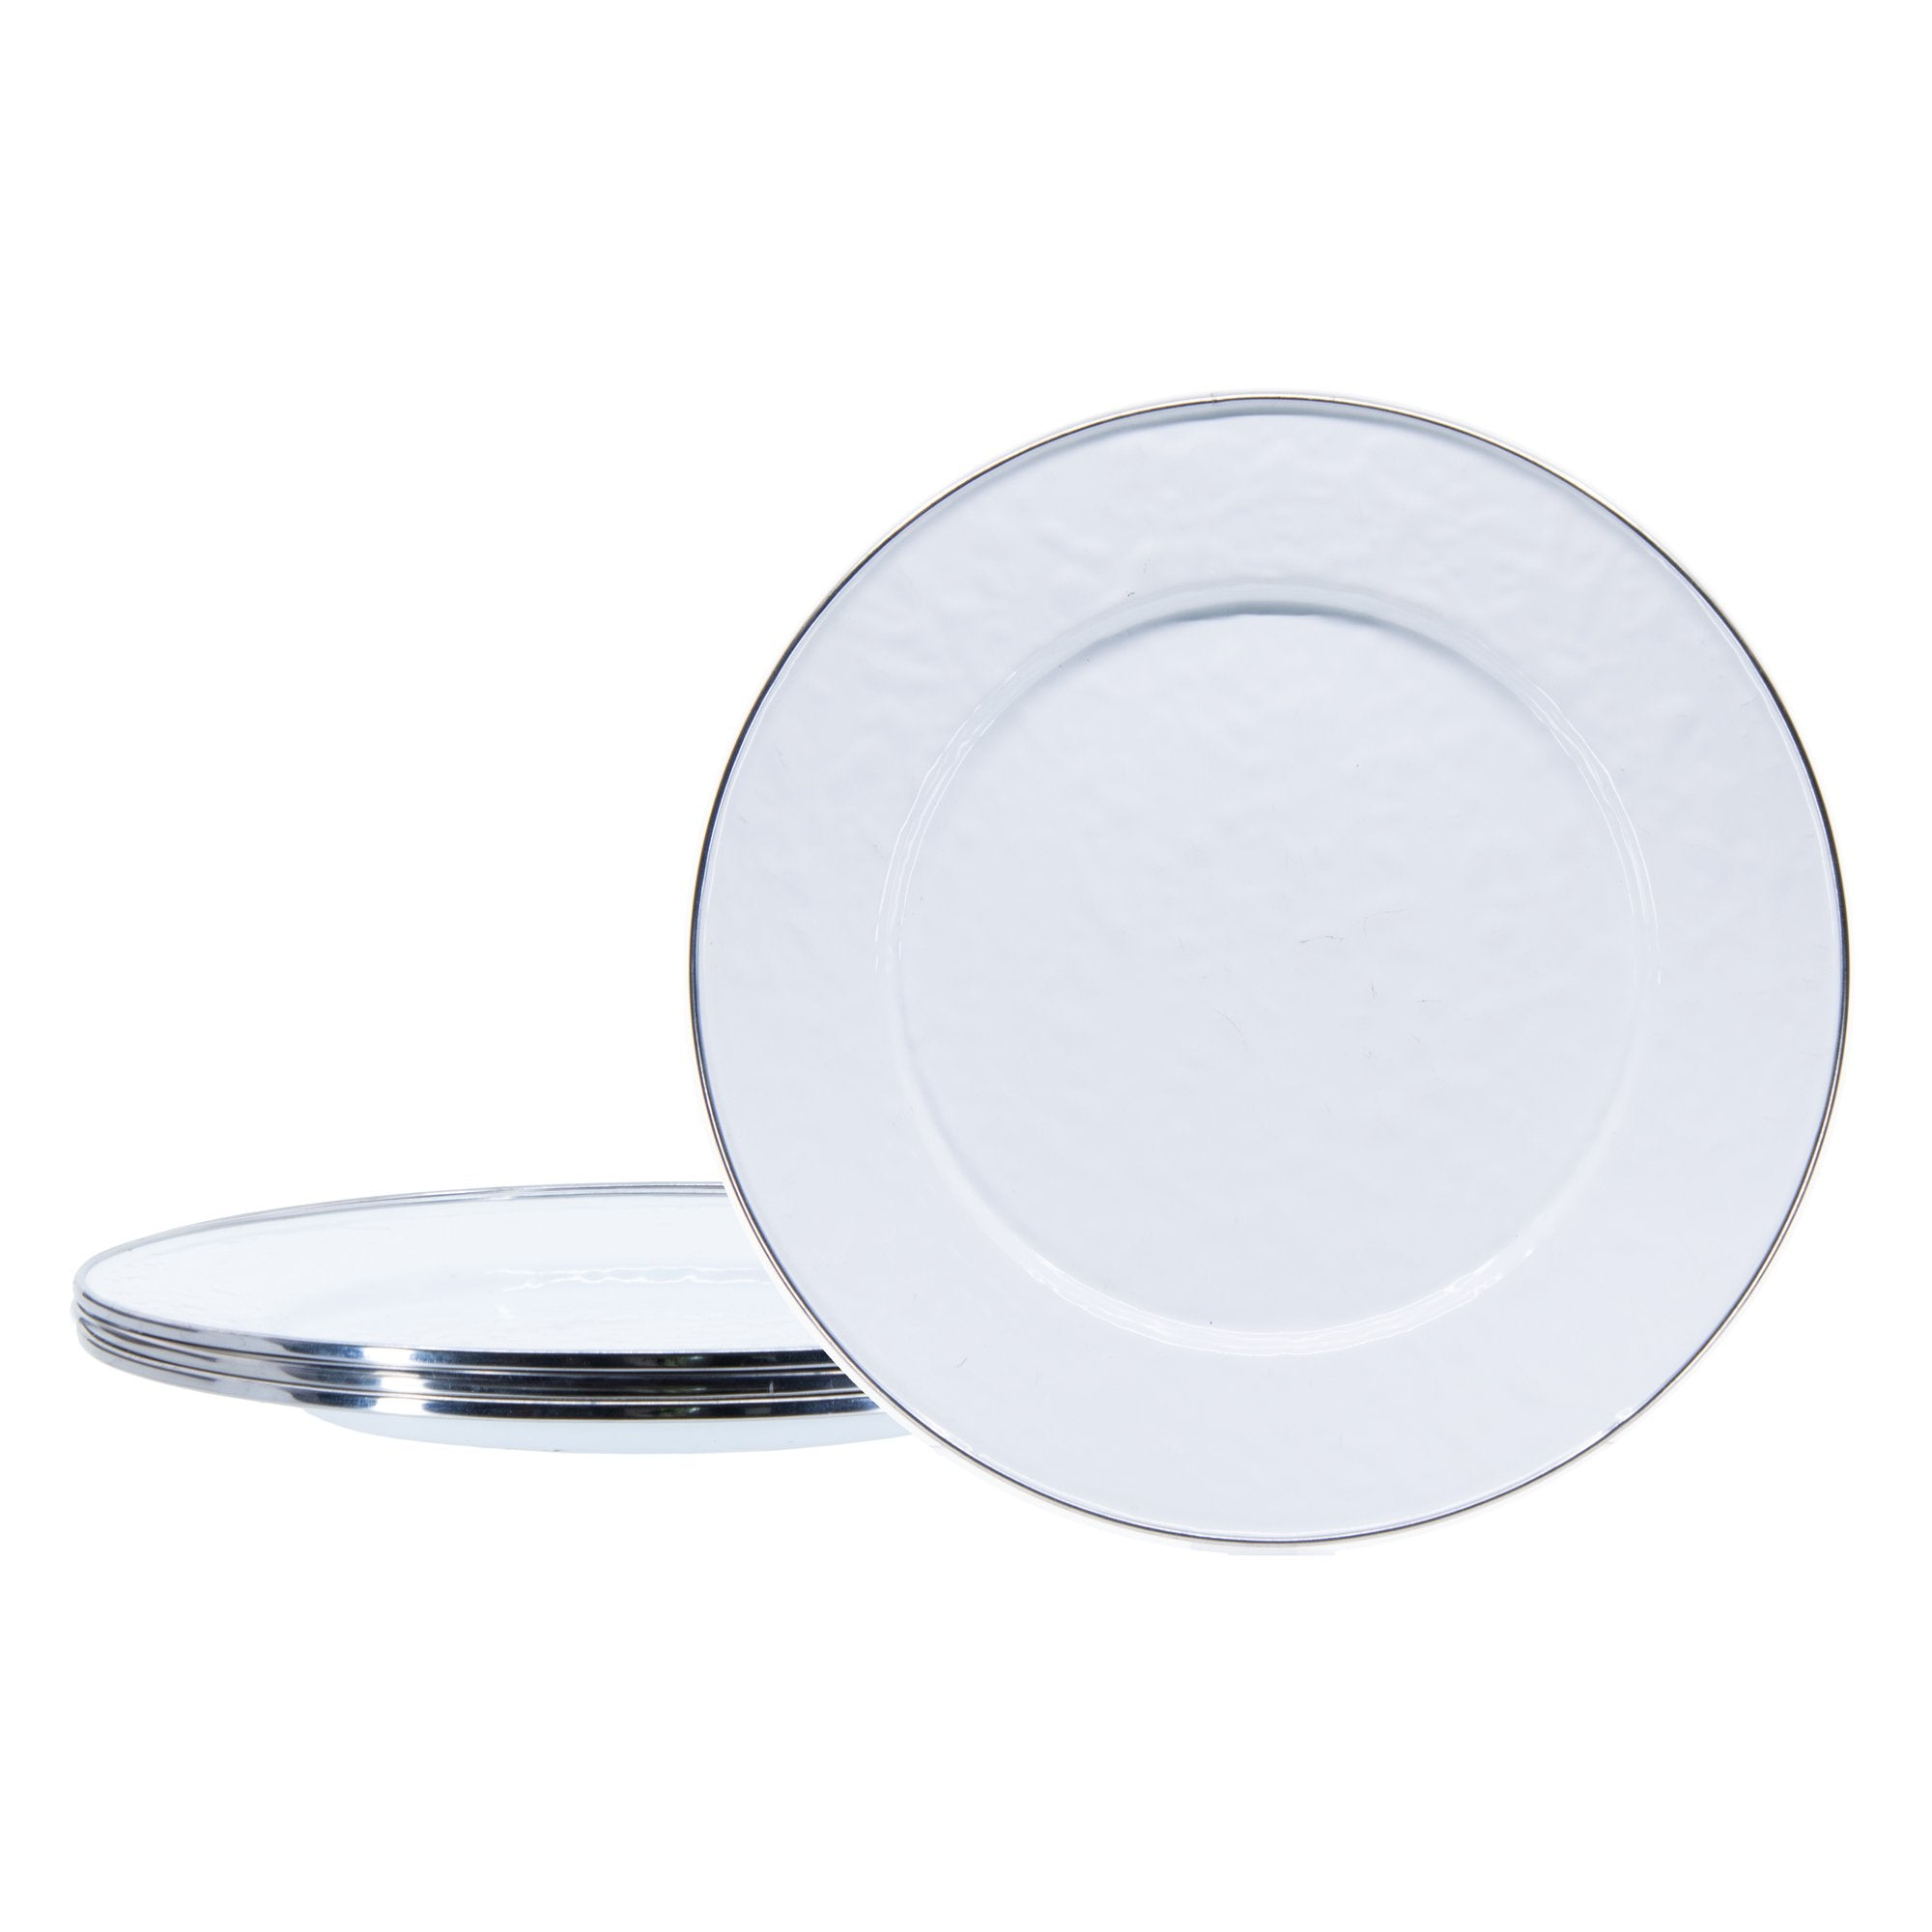 WW07S4 - Set of 4 - Solid White - Enamelware Dinner Plates